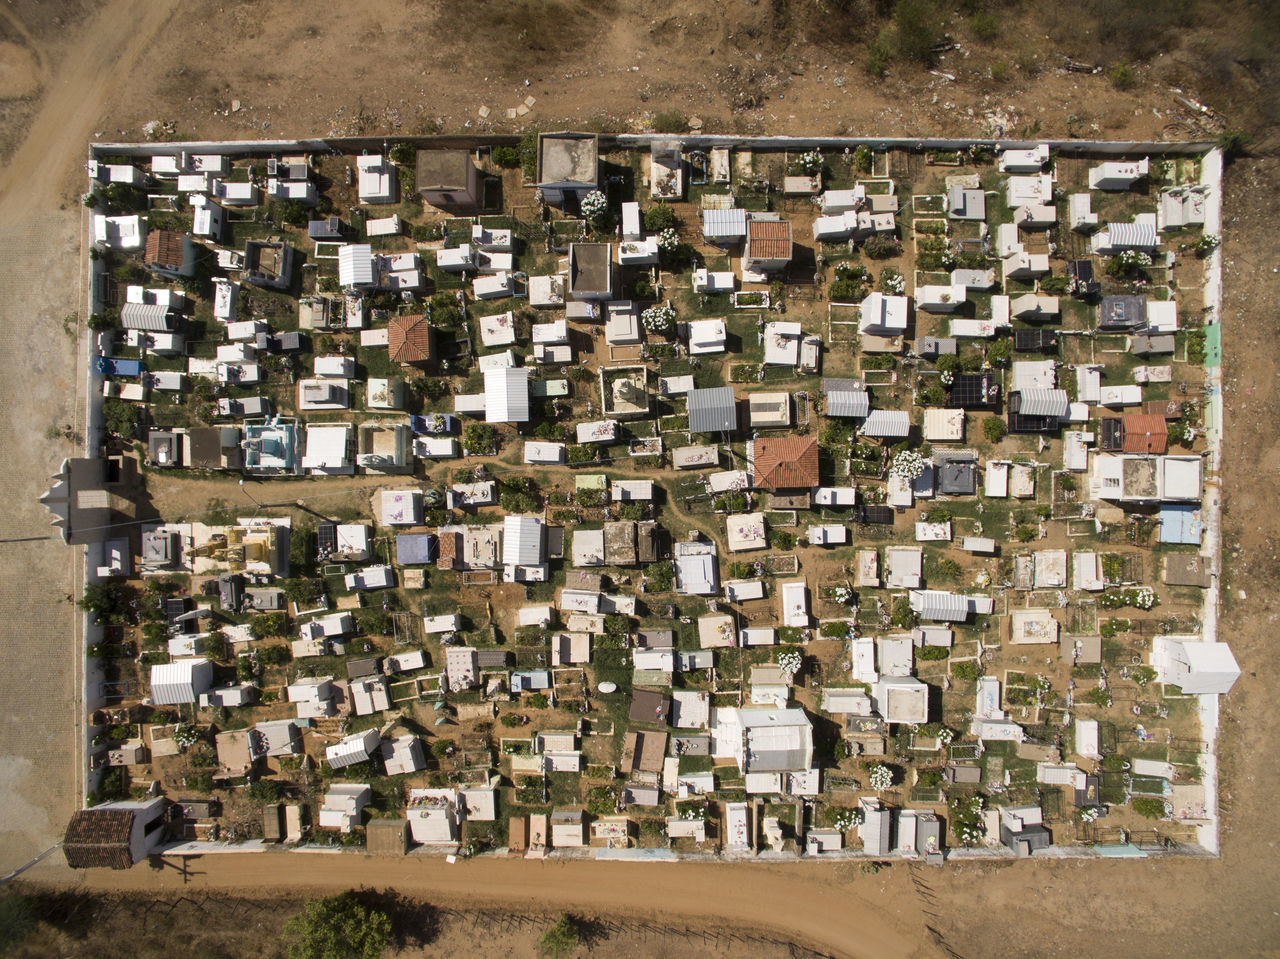 EyEmNewHere Dronephotography Brazil Flying High Airphotography Graveyard